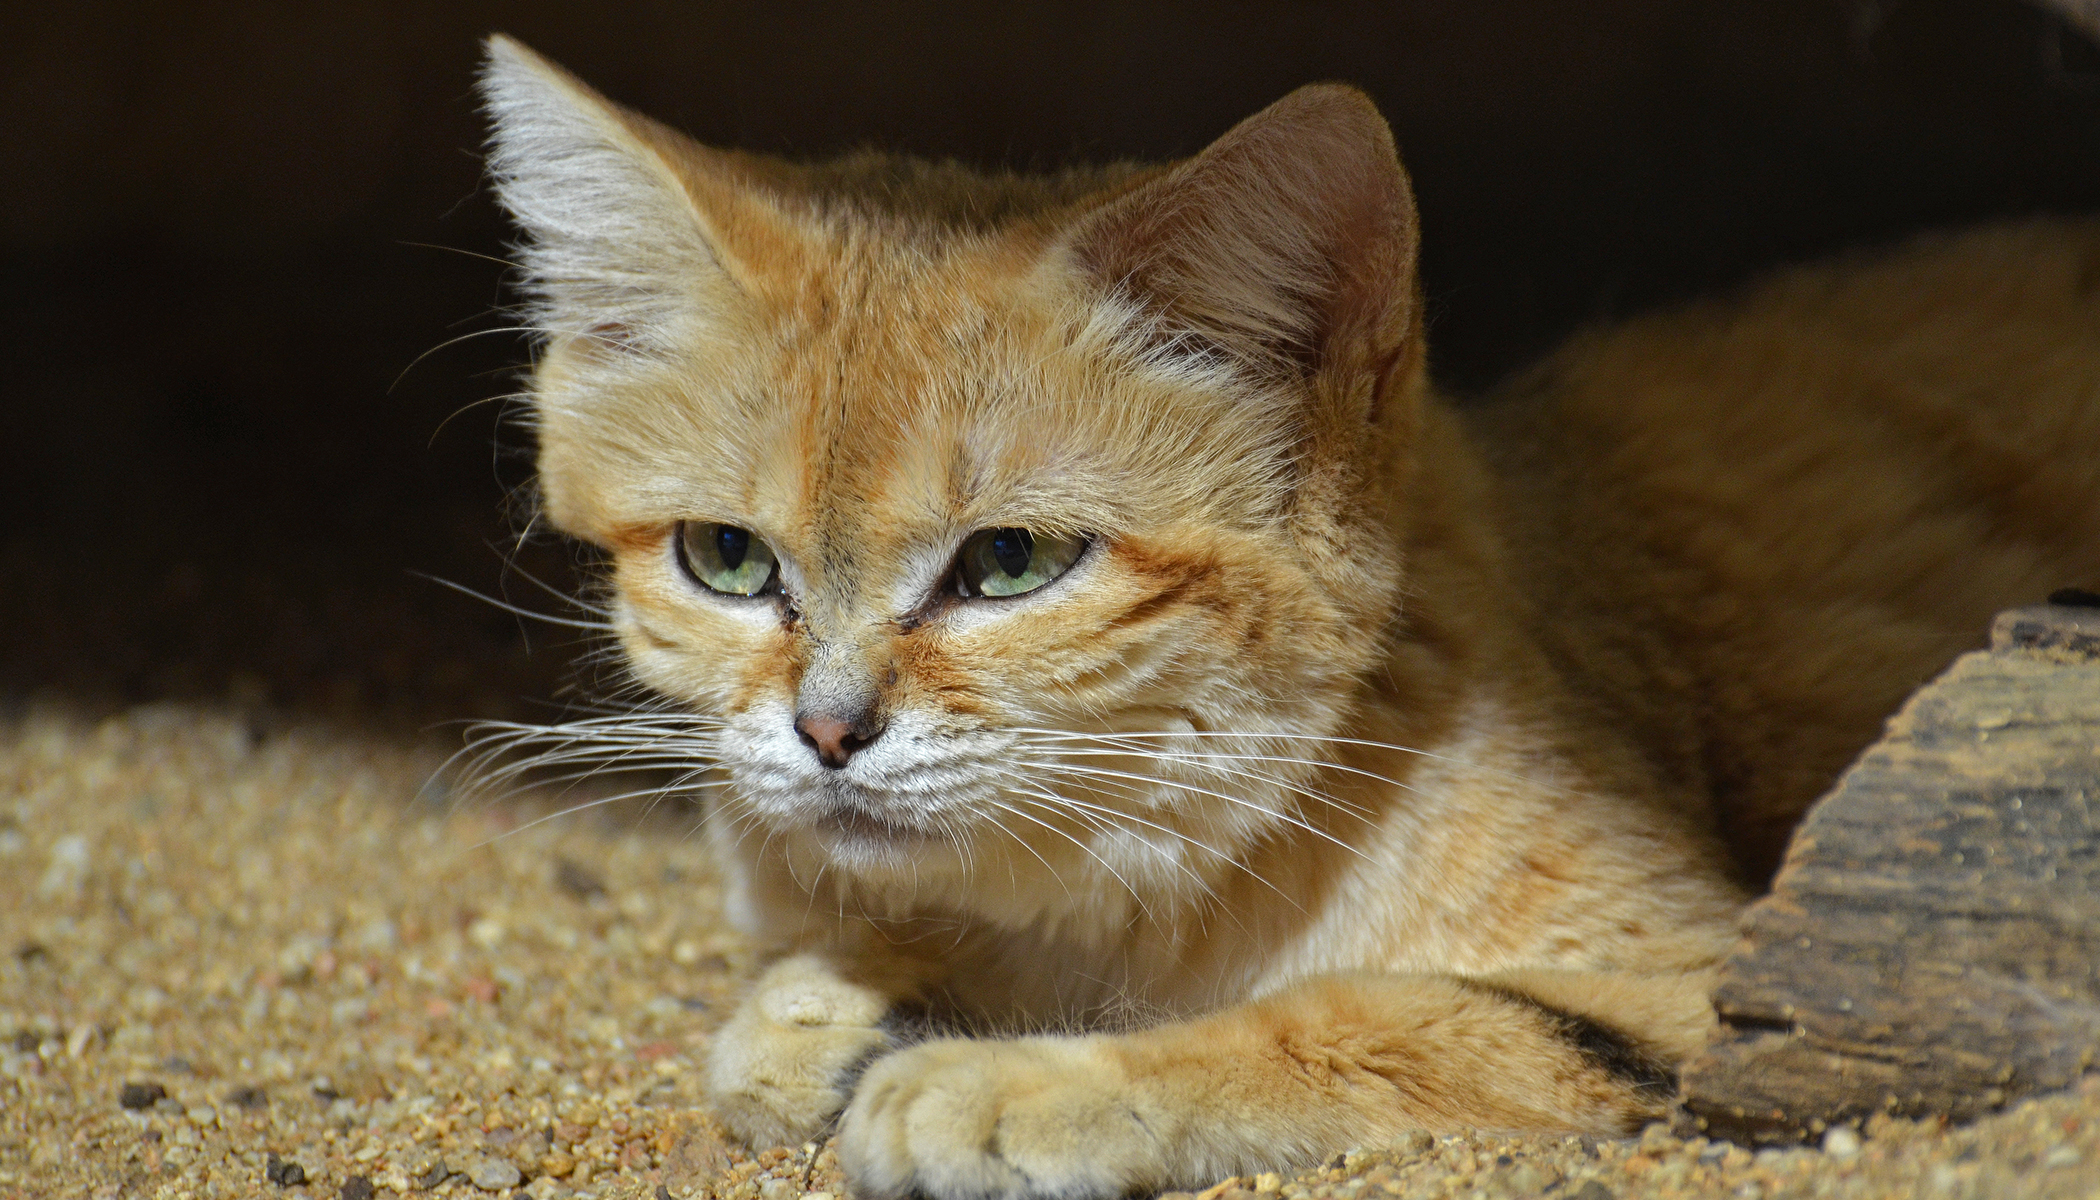 Almost Invisible Arabian Sand Cat Caught on Camera Trap for First Time in 10 Years